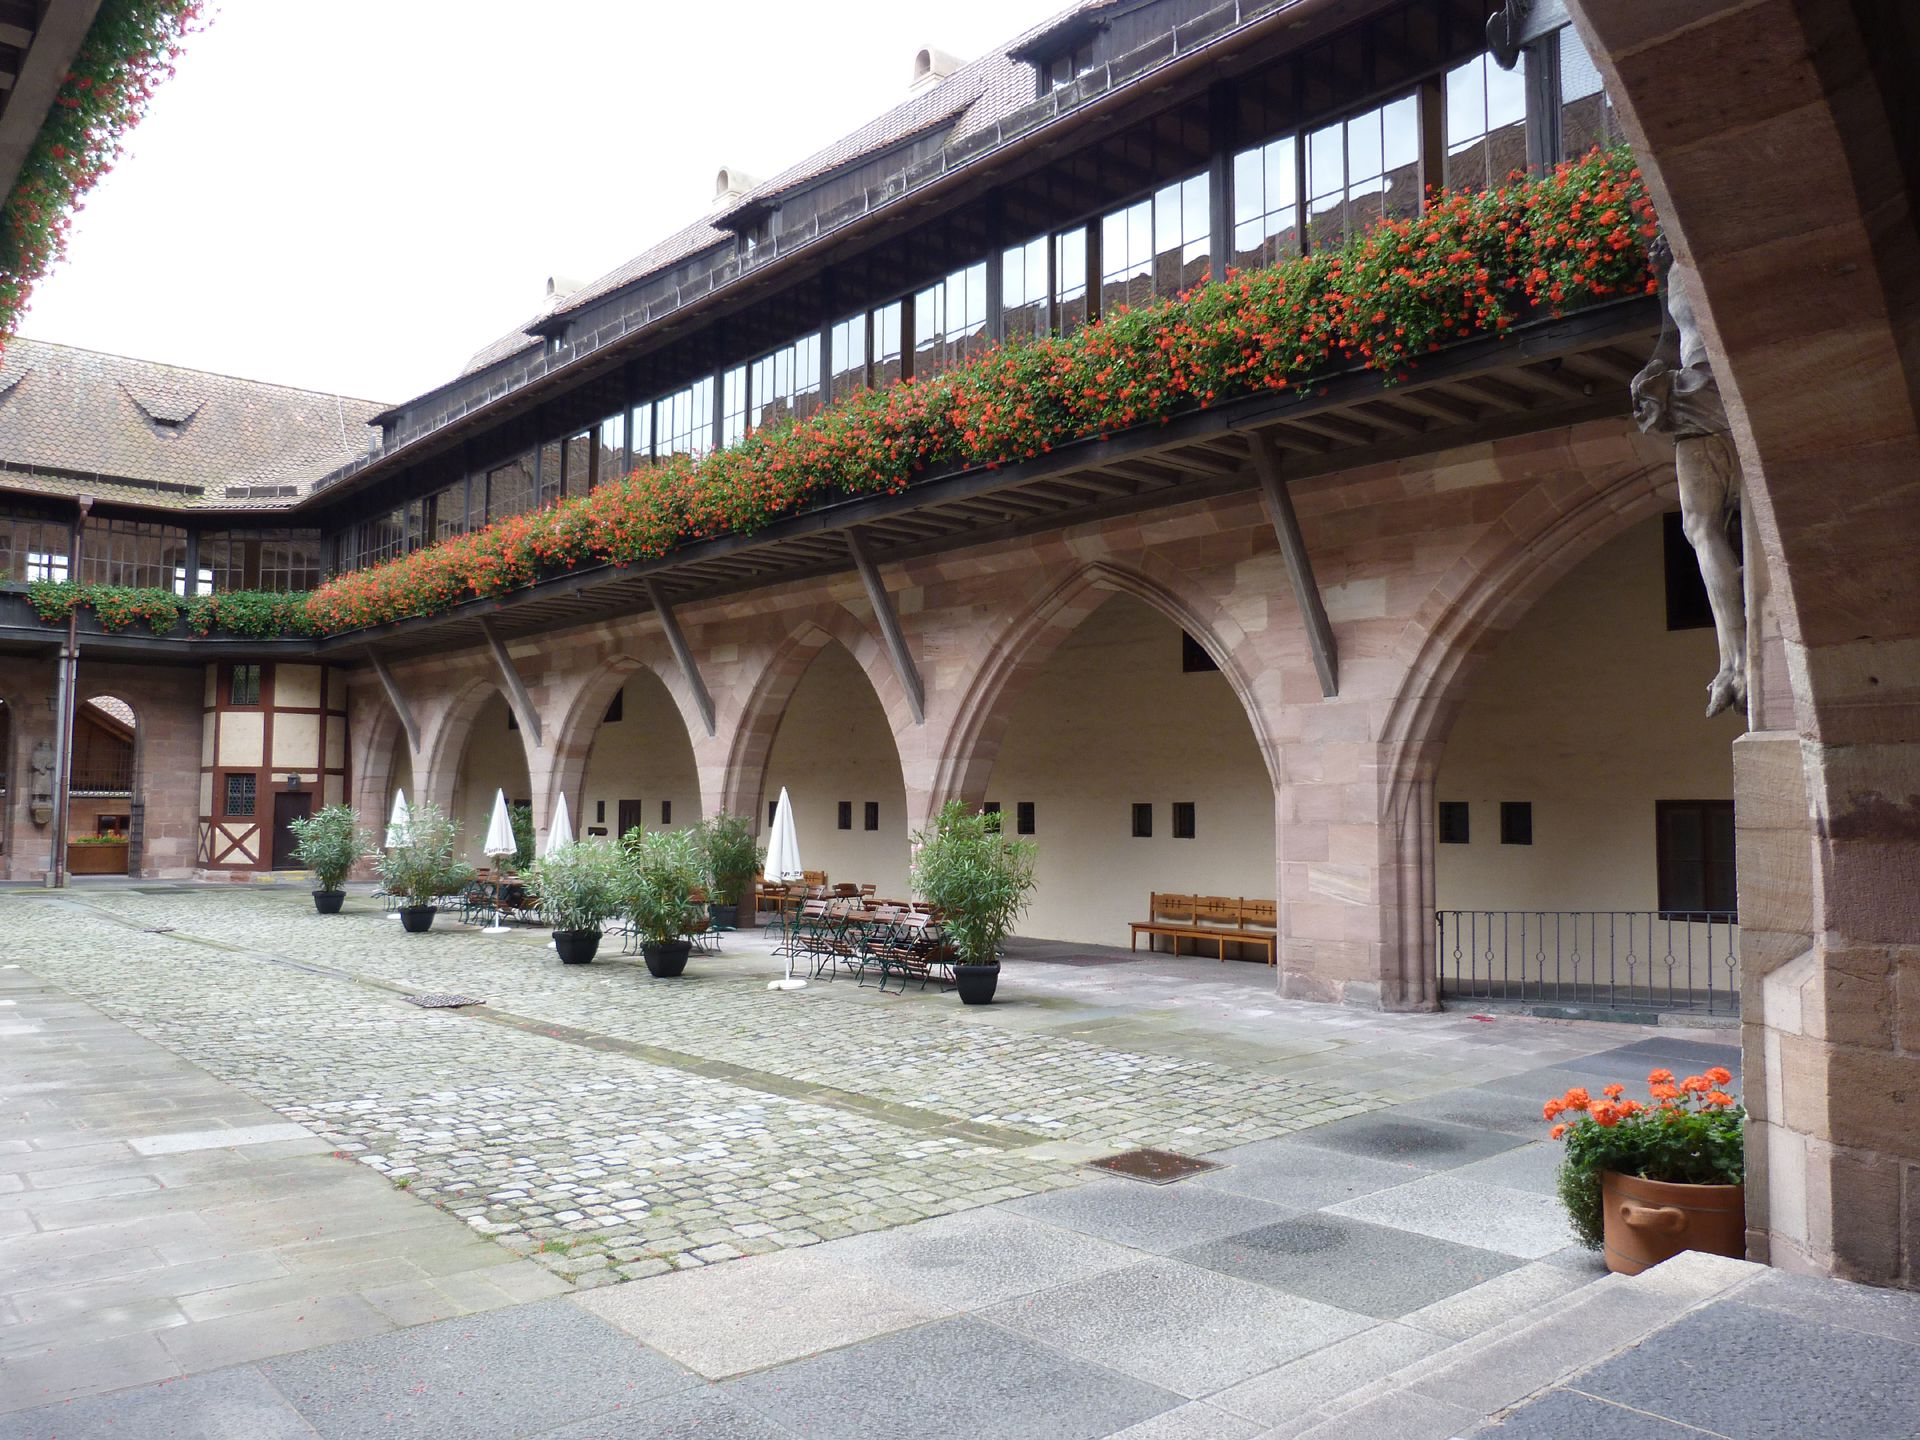 Hospice of the Holy Spirit Courtyard with arcades, arches with walkway galleries designed and positioned as a bridge spanning the river Pegnitz